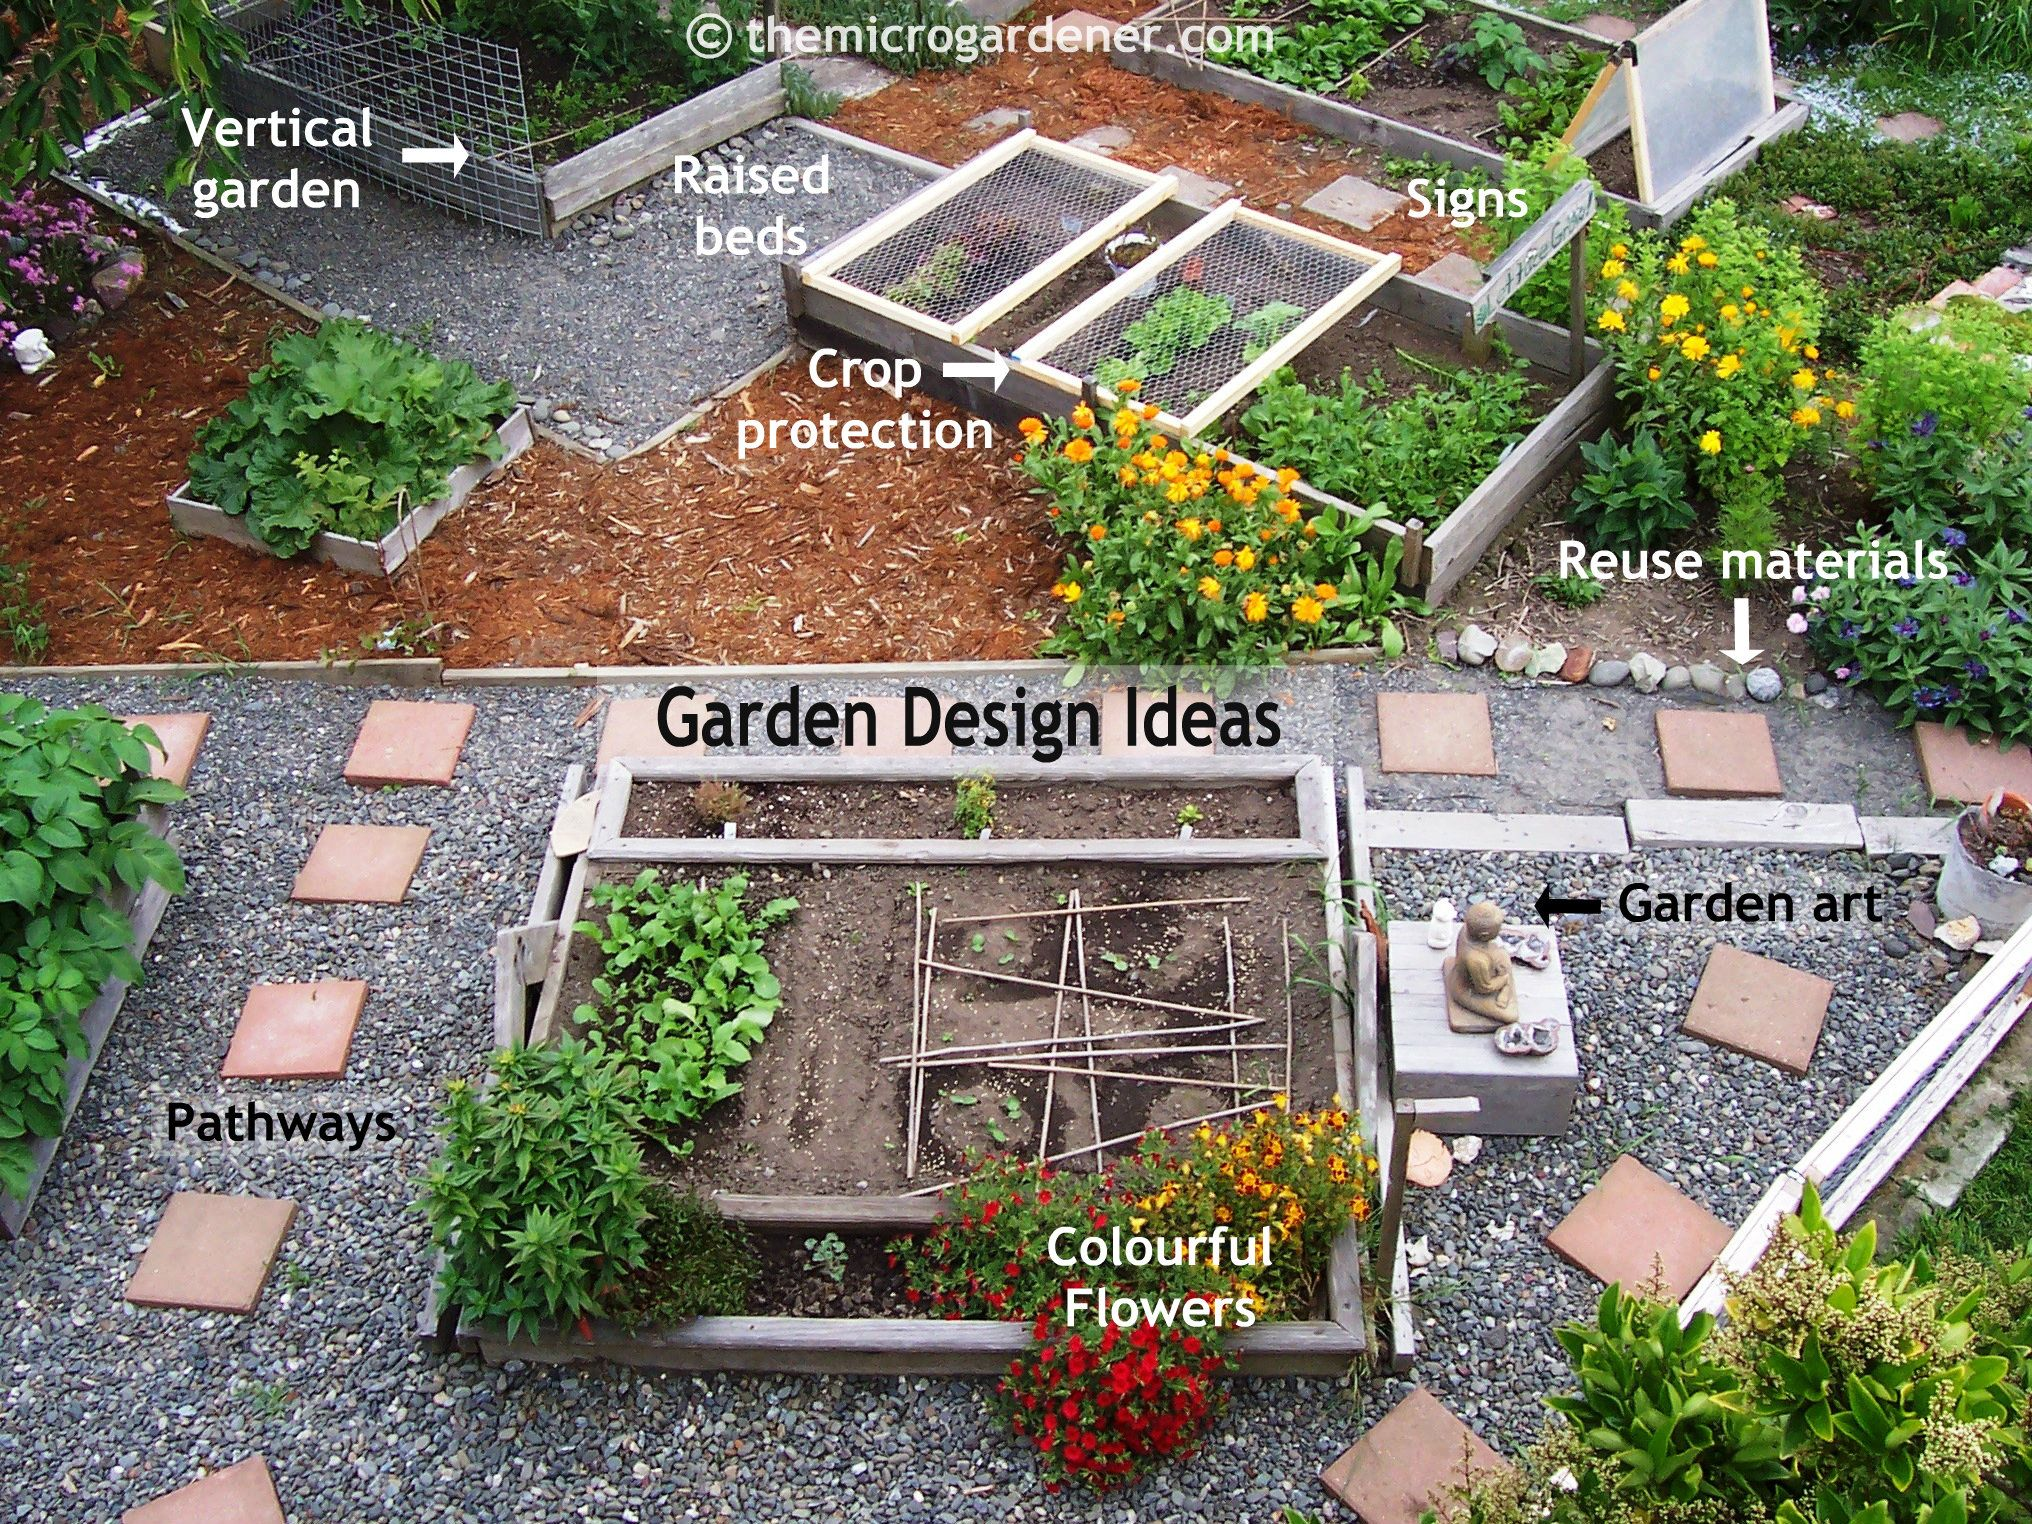 Small garden design ideas on pinterest vertical gardens for Garden design plans